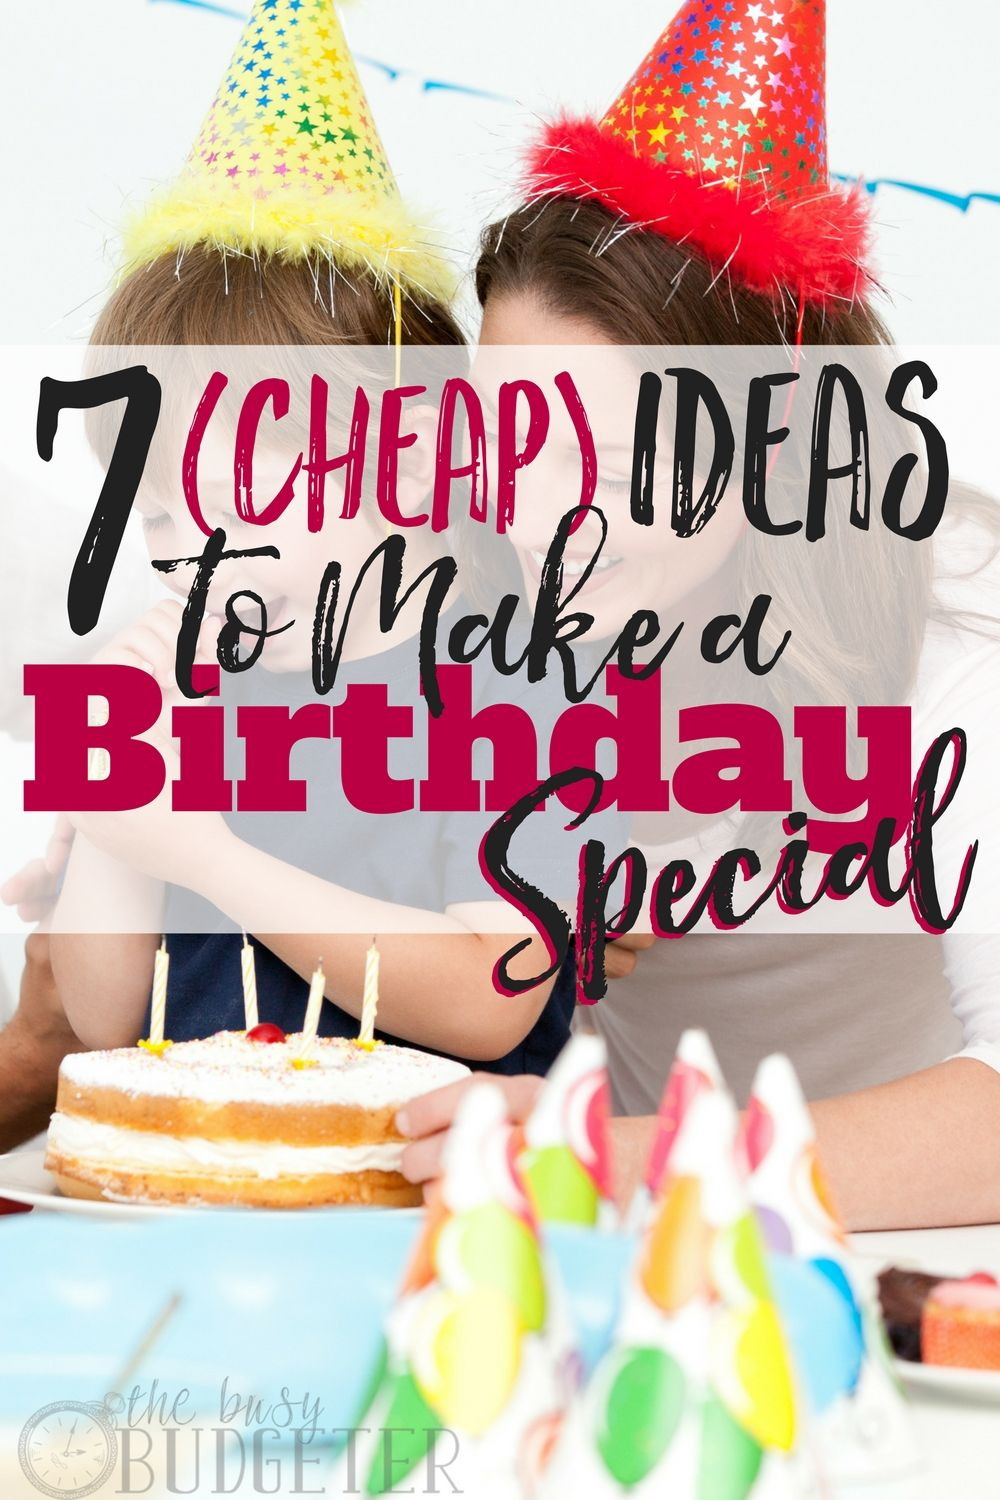 These Ideas To Make A Birthday Special Are Amazing Not Only They Super Budget Friendly But Now I Can Throw My Kids And Husband An Awesome